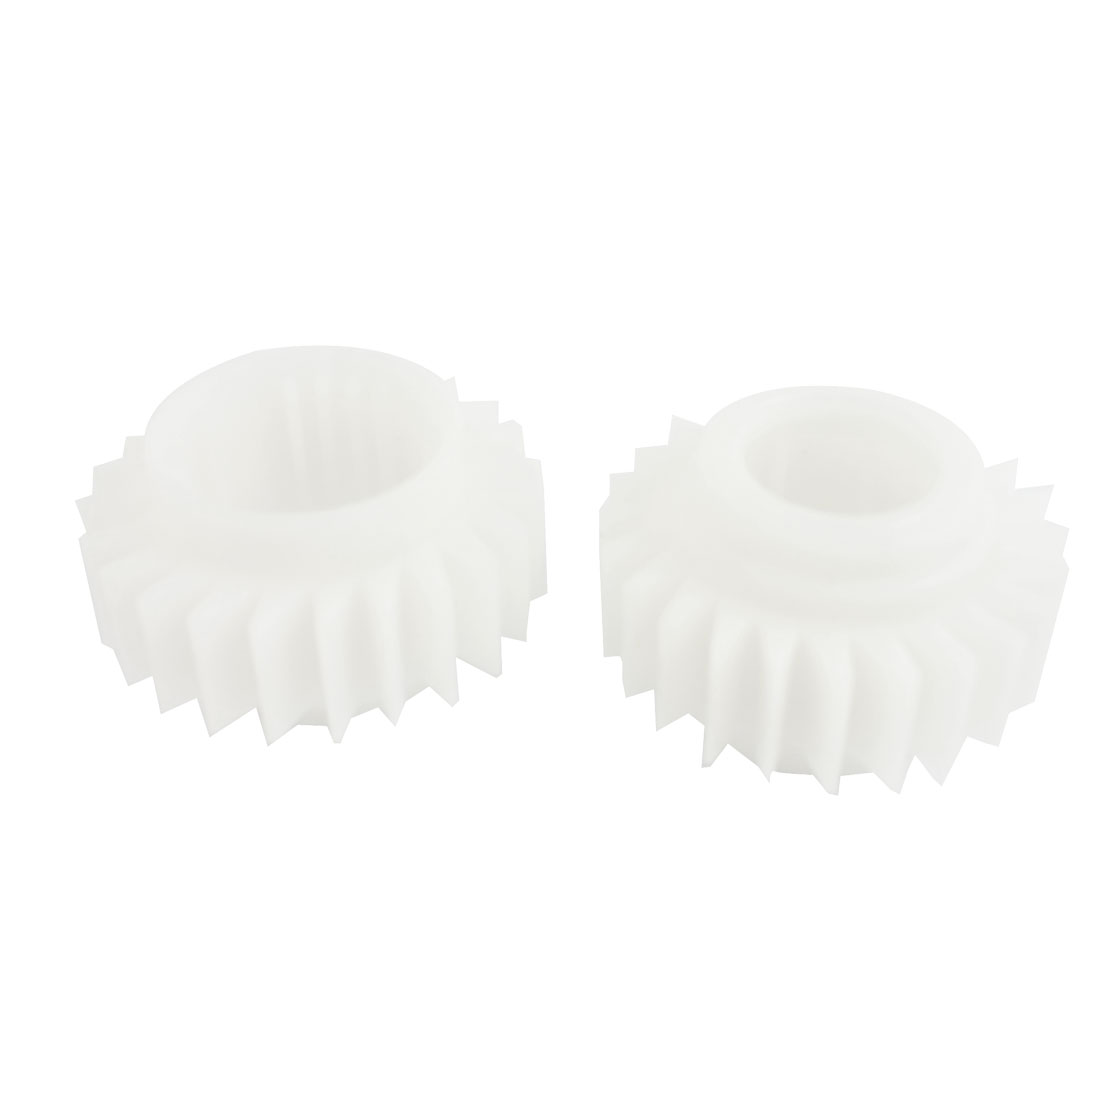 2 Pcs Universal 15mm Width 24 Teeth Plastic Ratchet Wheel White for Washing Machine Washer